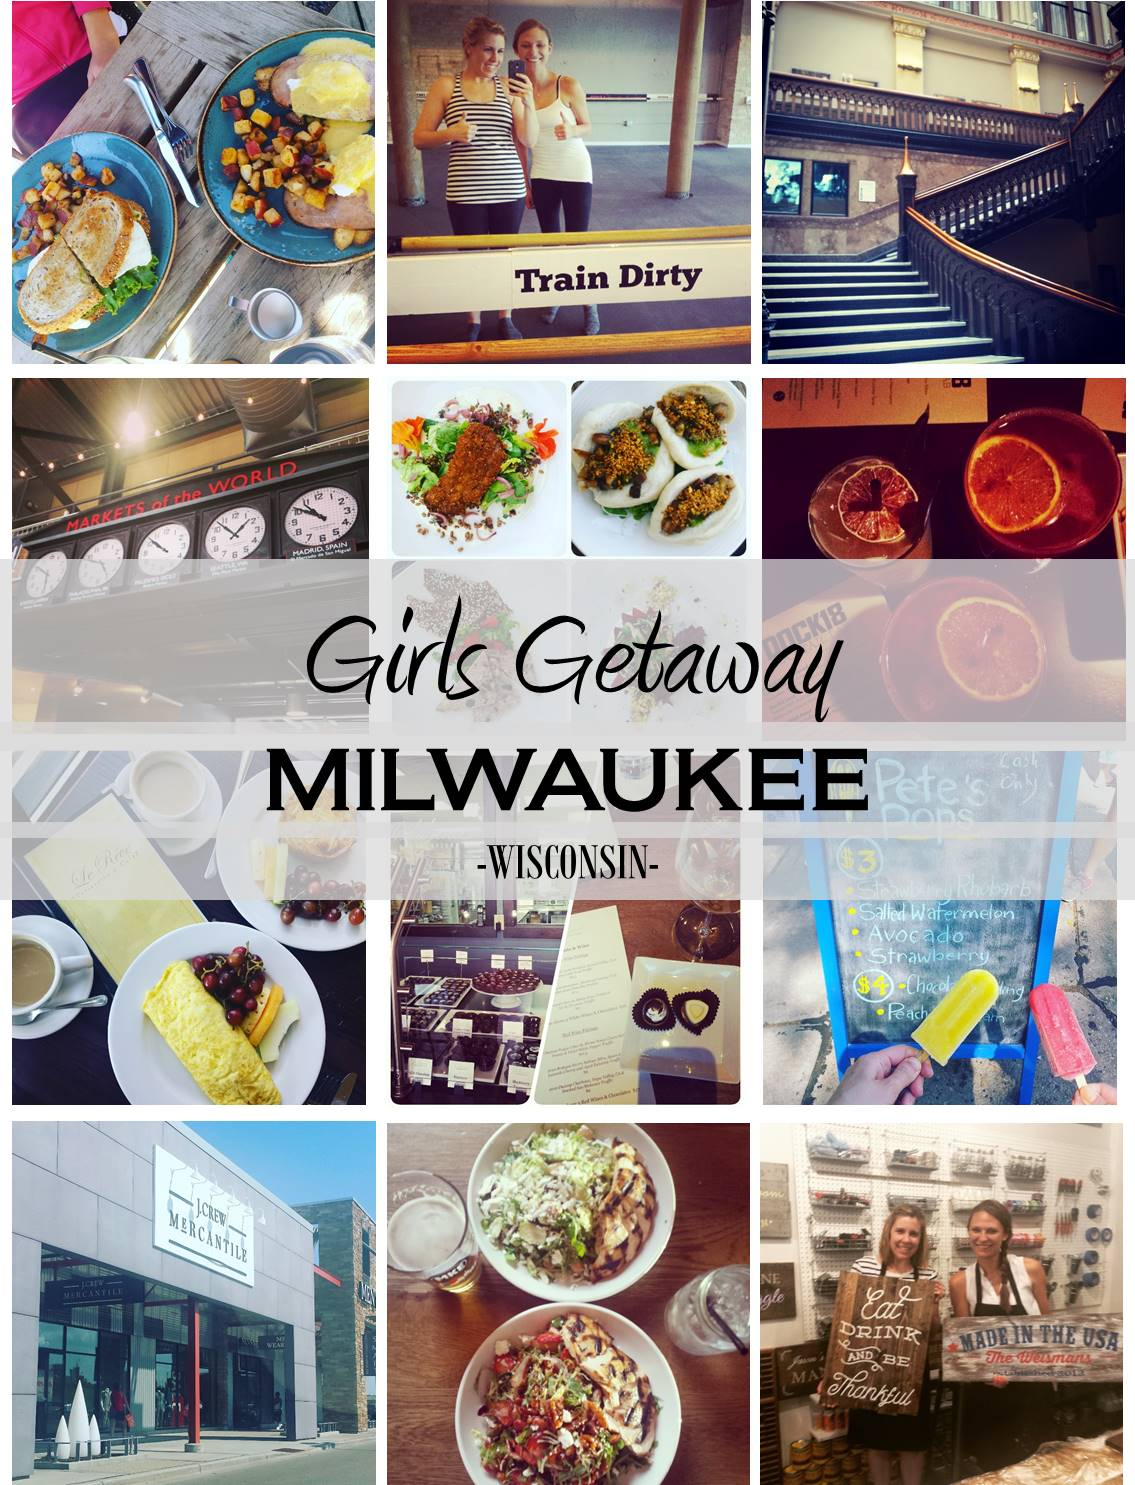 Girls Getaway Milwaukee Wisconsin #visitmke